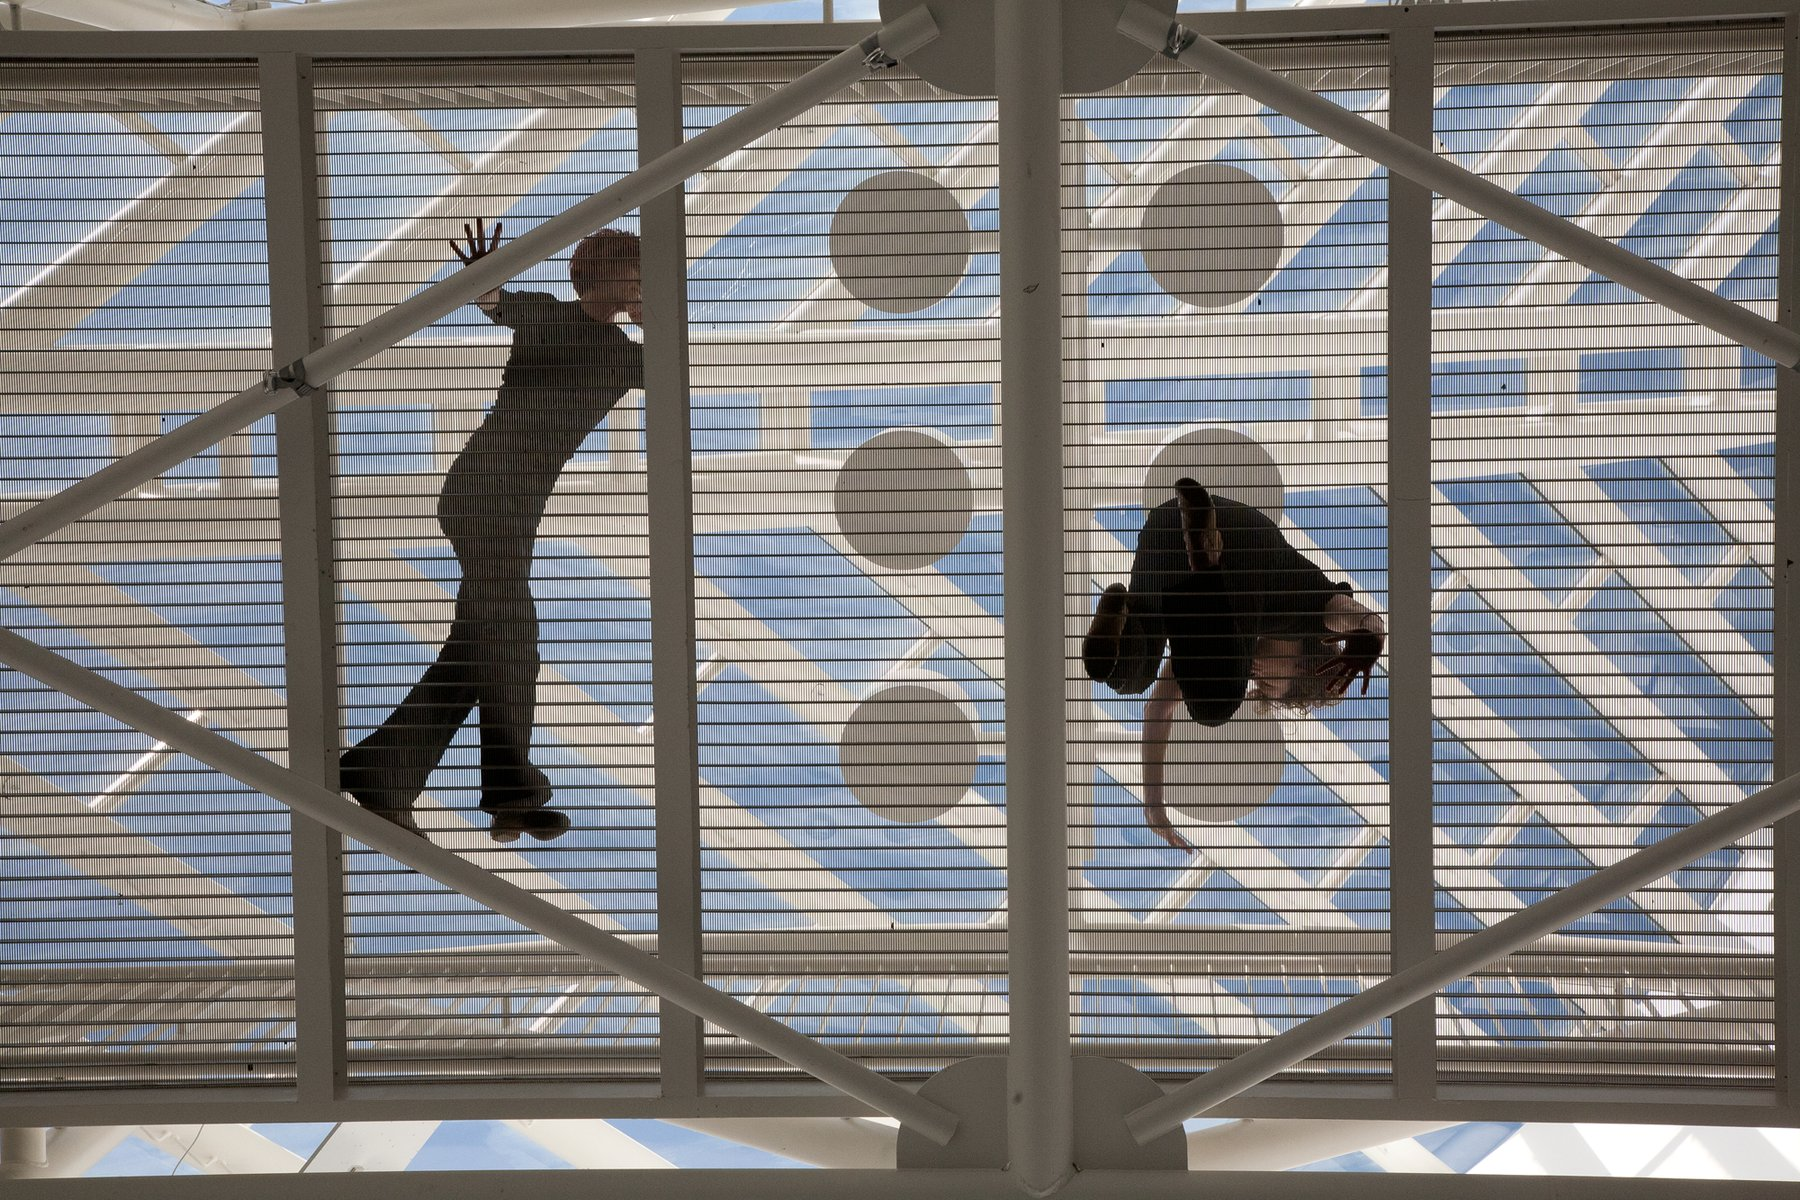 A white slatted bridge seen from below with dancers silhouetted